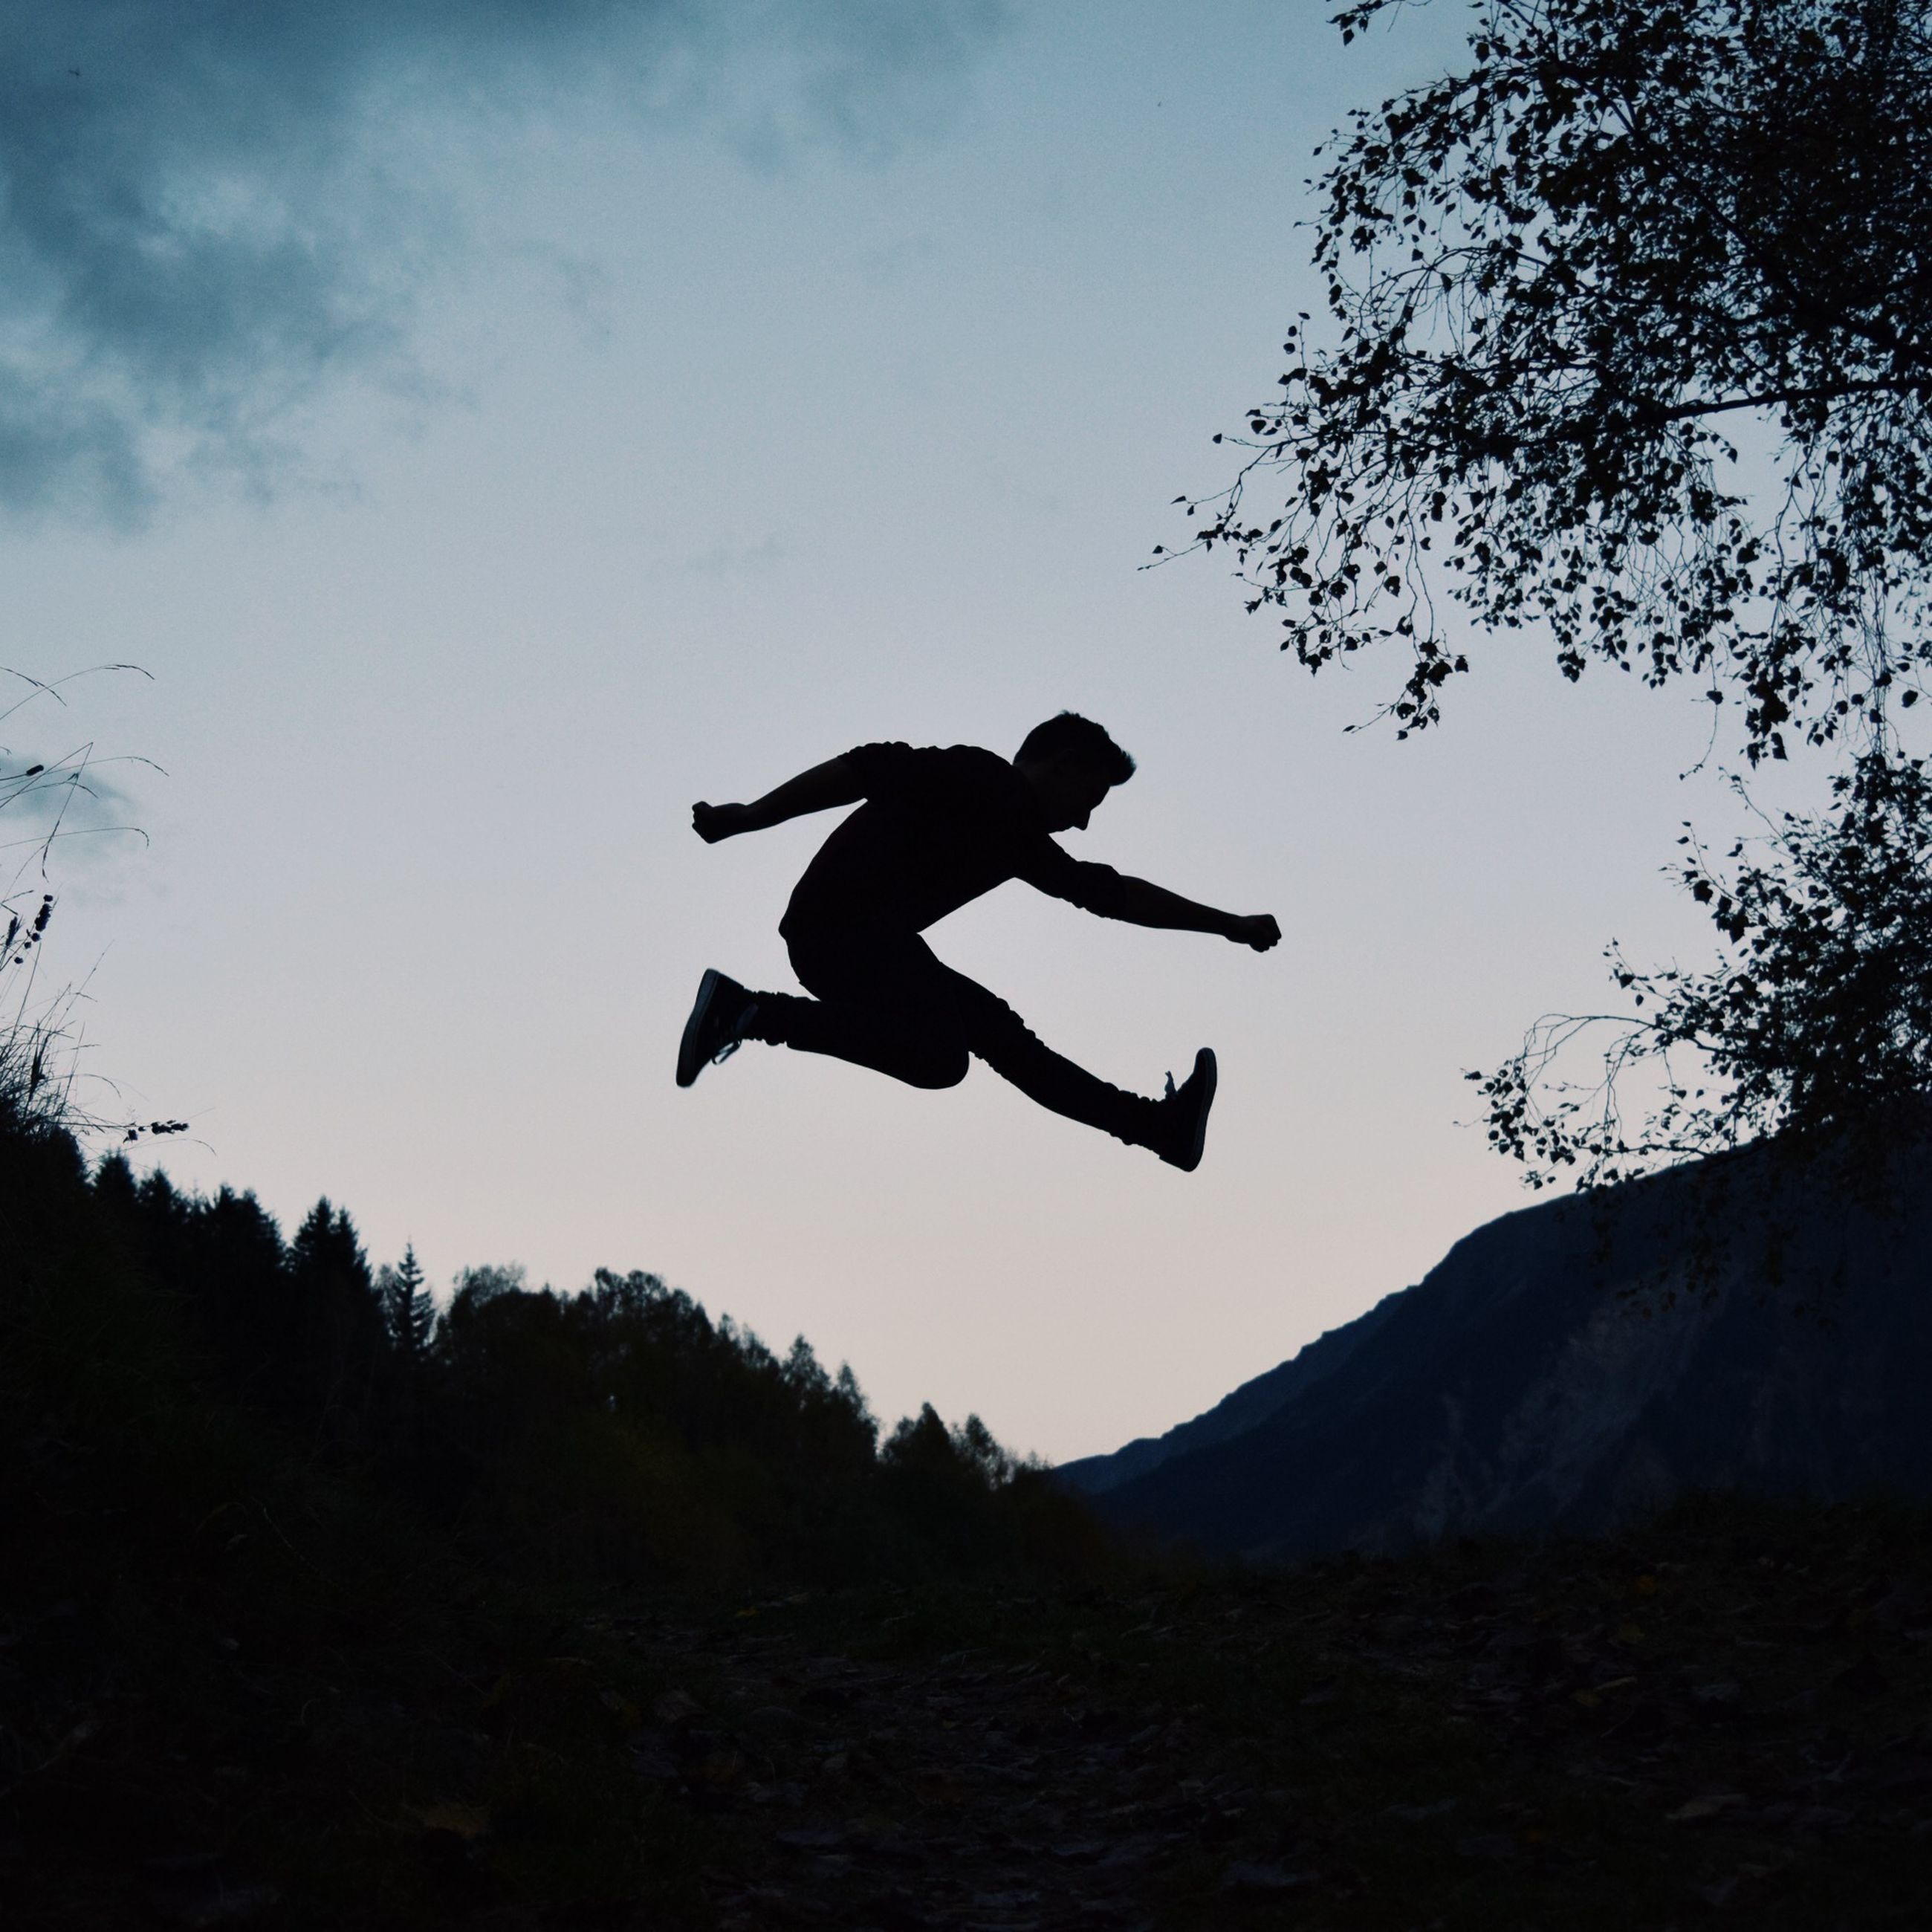 silhouette, mid-air, sky, low angle view, full length, jumping, flying, freedom, leisure activity, mountain, nature, lifestyles, men, side view, outdoors, dusk, arms outstretched, tranquility